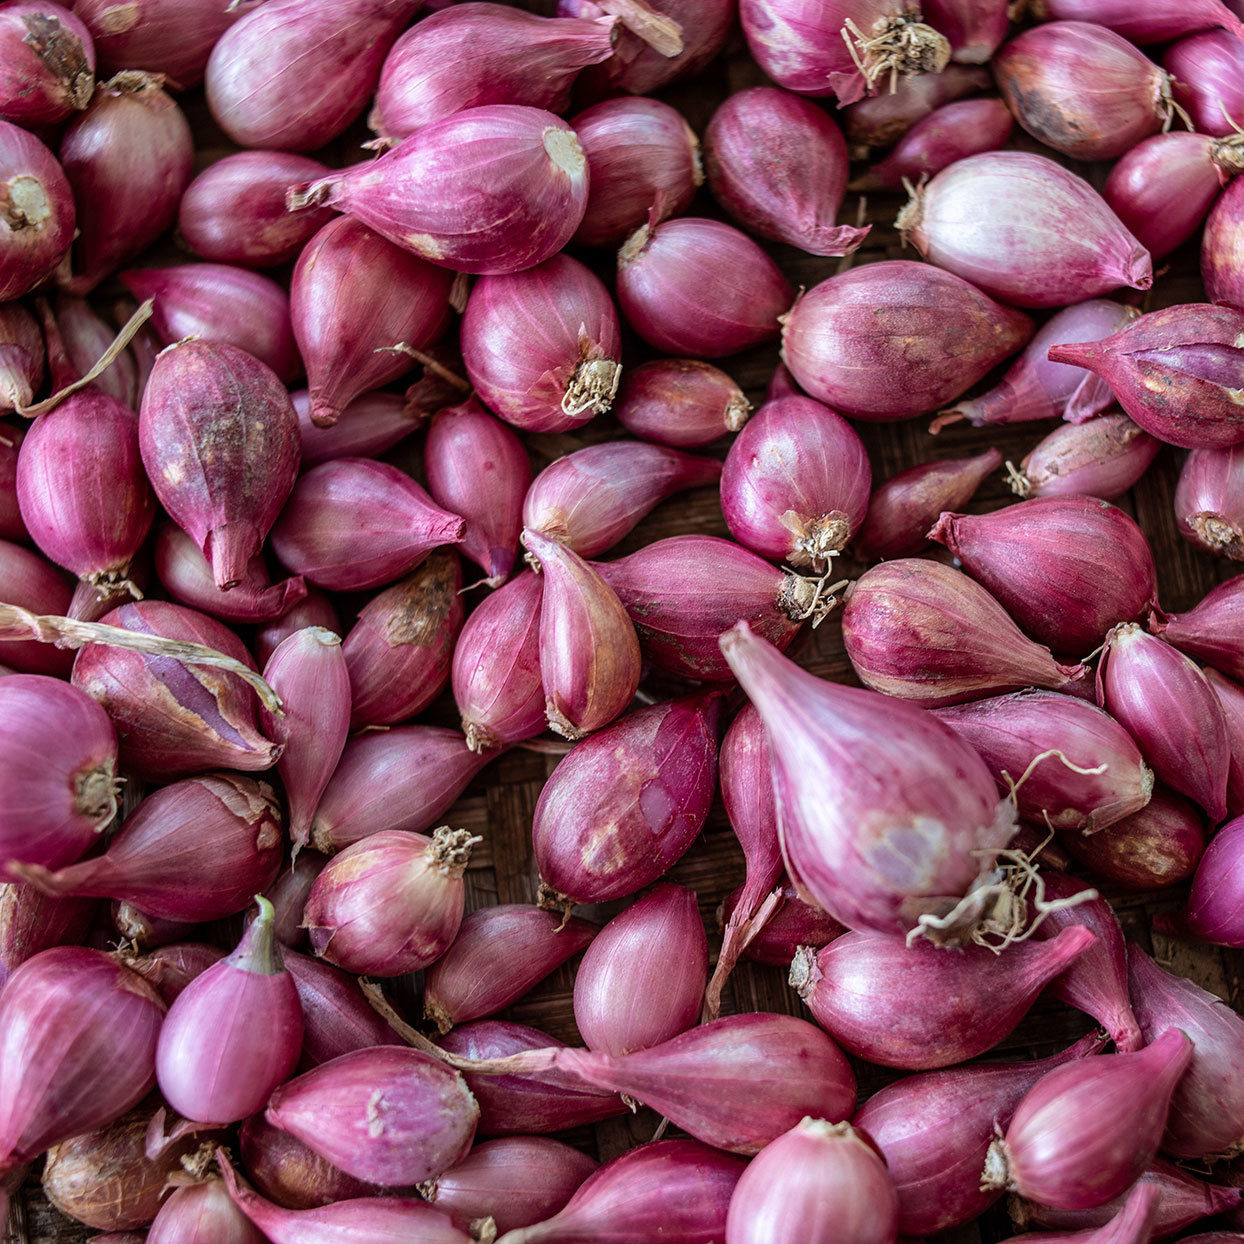 What Are Shallots and What Can I Do with Them?